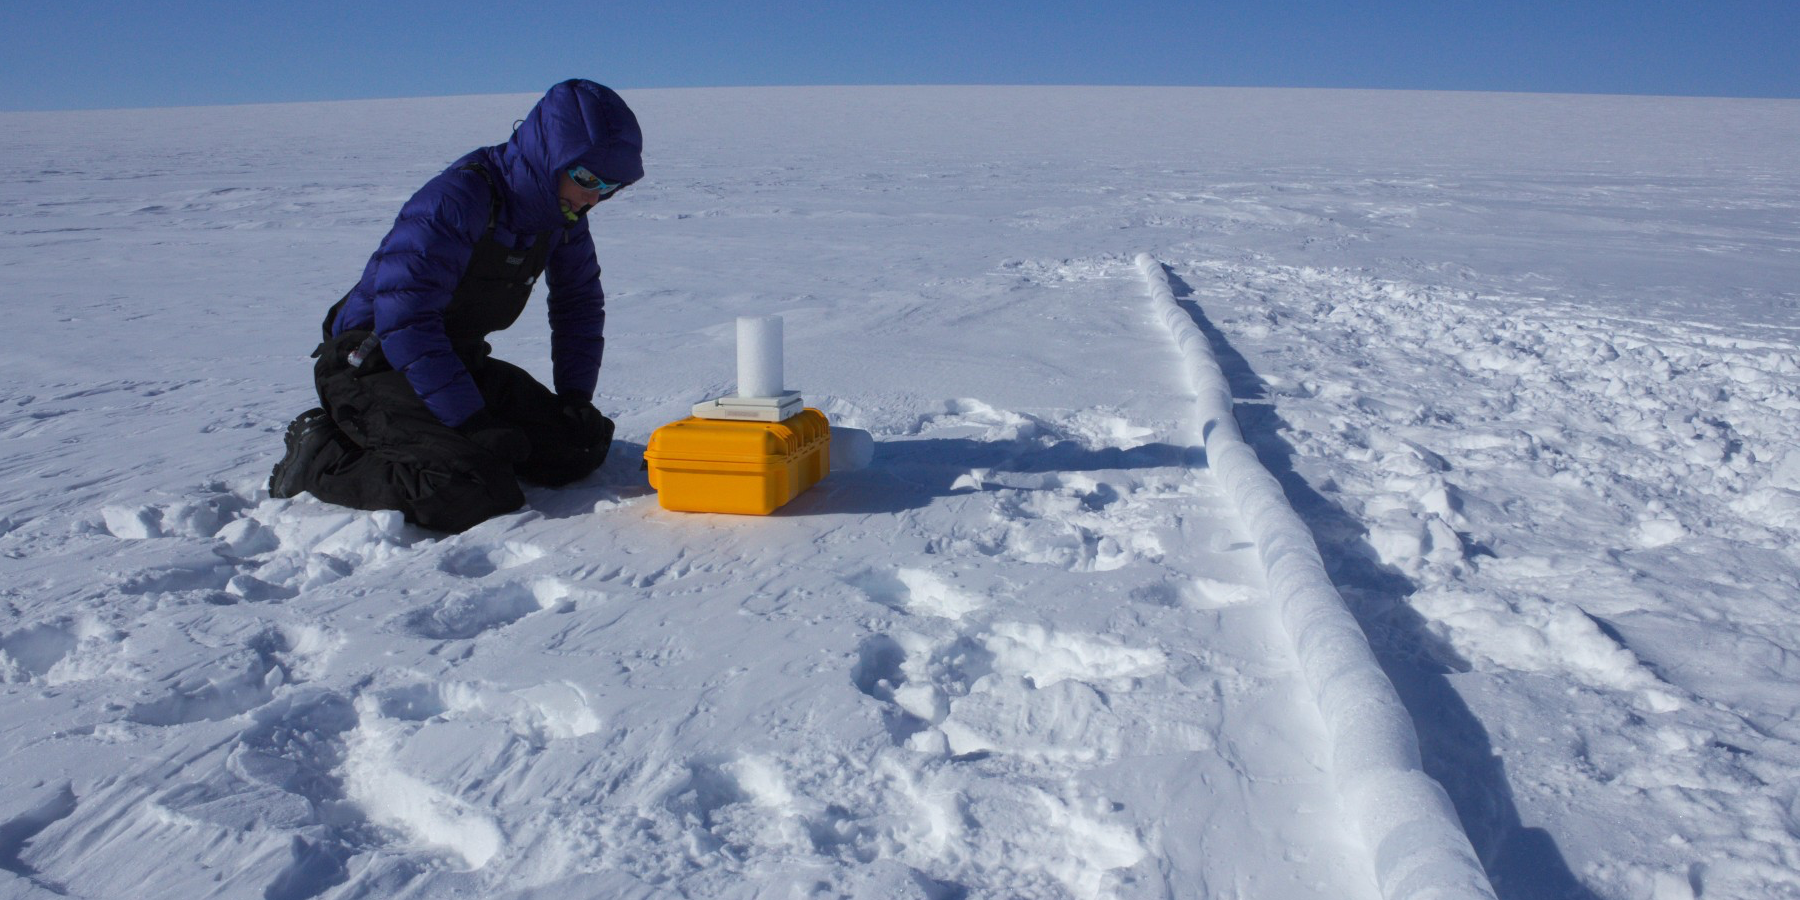 Ice core driller Ali Criscitiello examines a core sample. (Photo courtesy Anja Rutihauser)